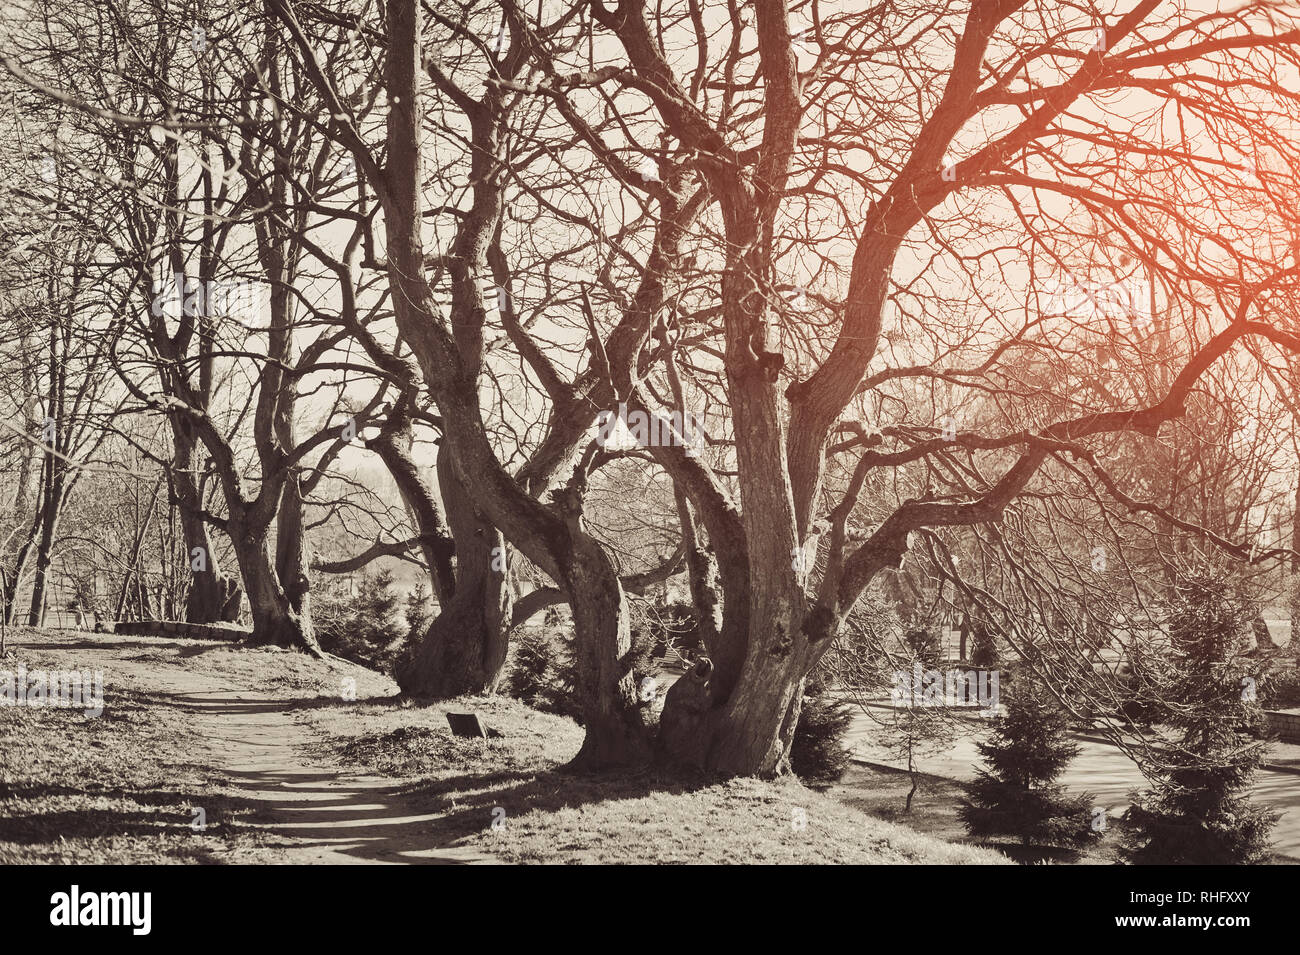 Mystical background. Ancient trees with knobby curving bare branches without leaves - Stock Image